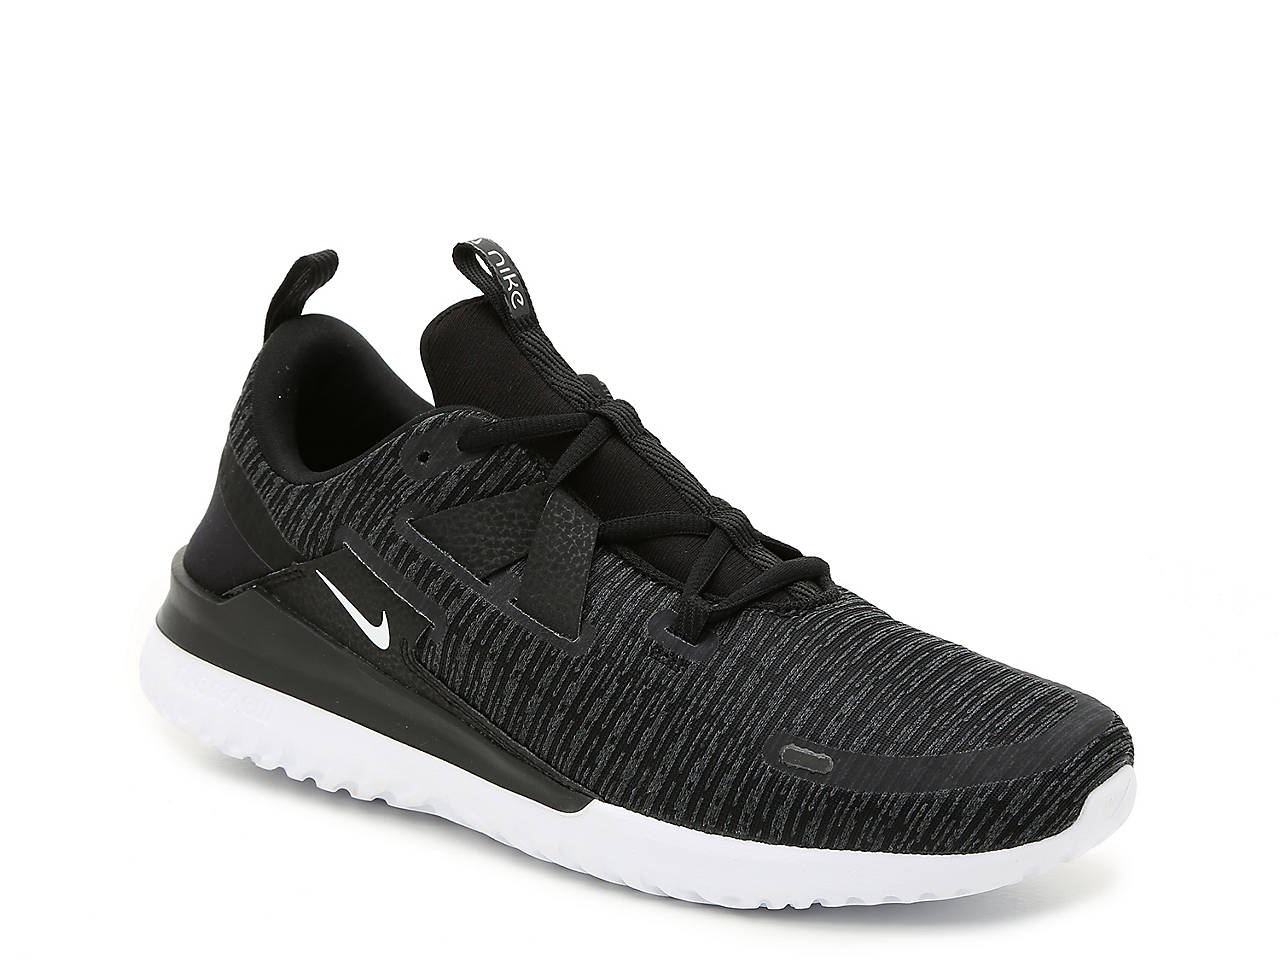 470e35351 Nike Renew Arena Lightweight Running Shoe - Men's Men's Shoes | DSW